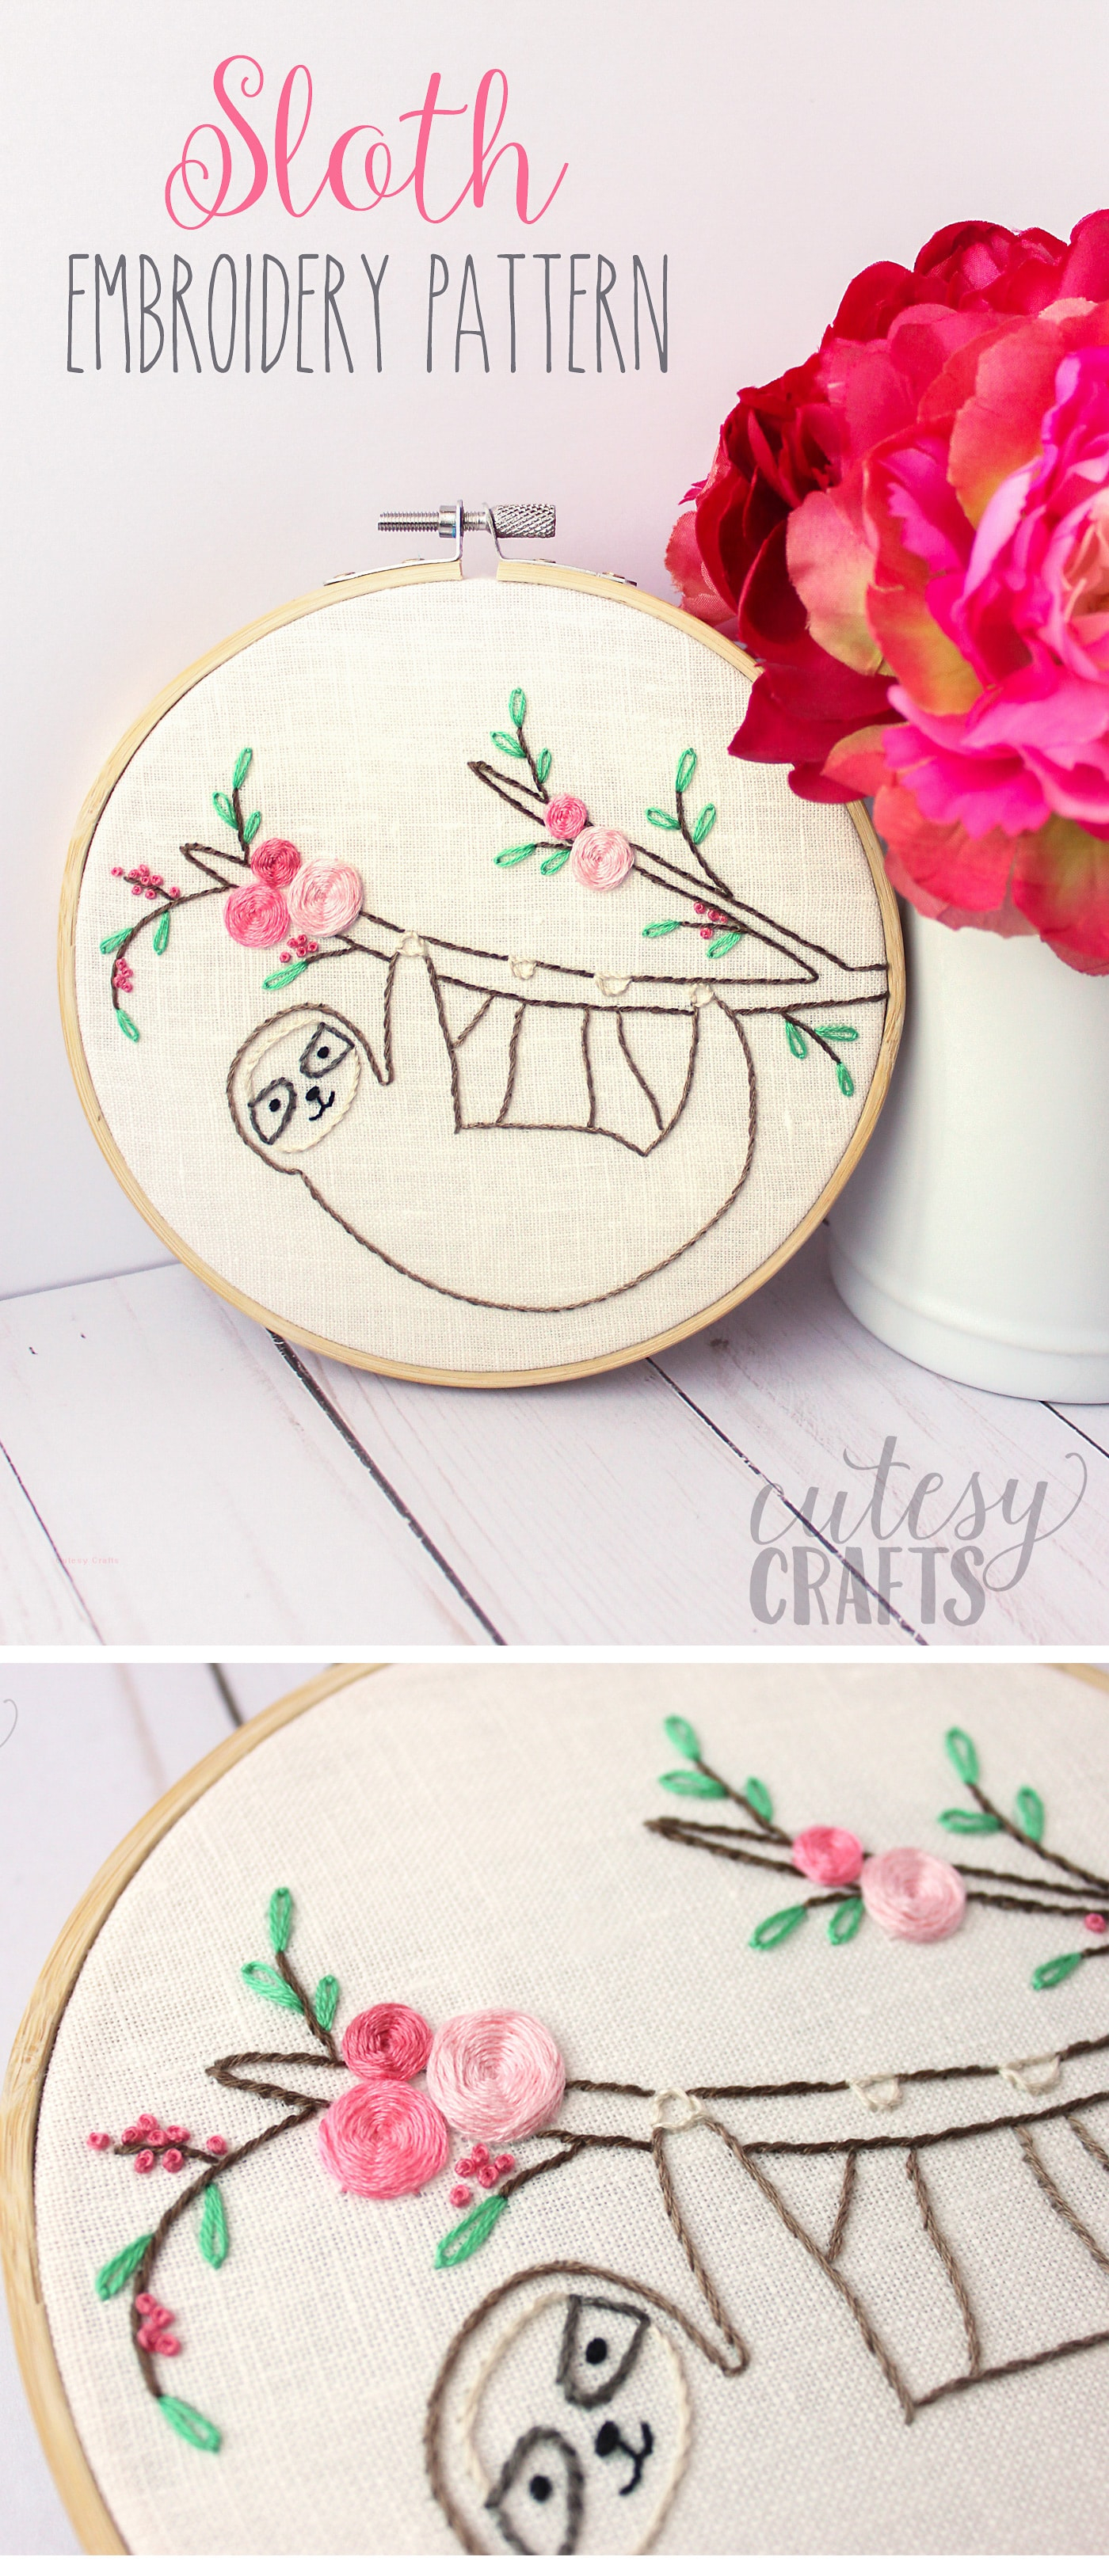 Embroidery For Beginners Free Patterns Adorable Sloth Hand Embroidery Pattern The Polka Dot Chair